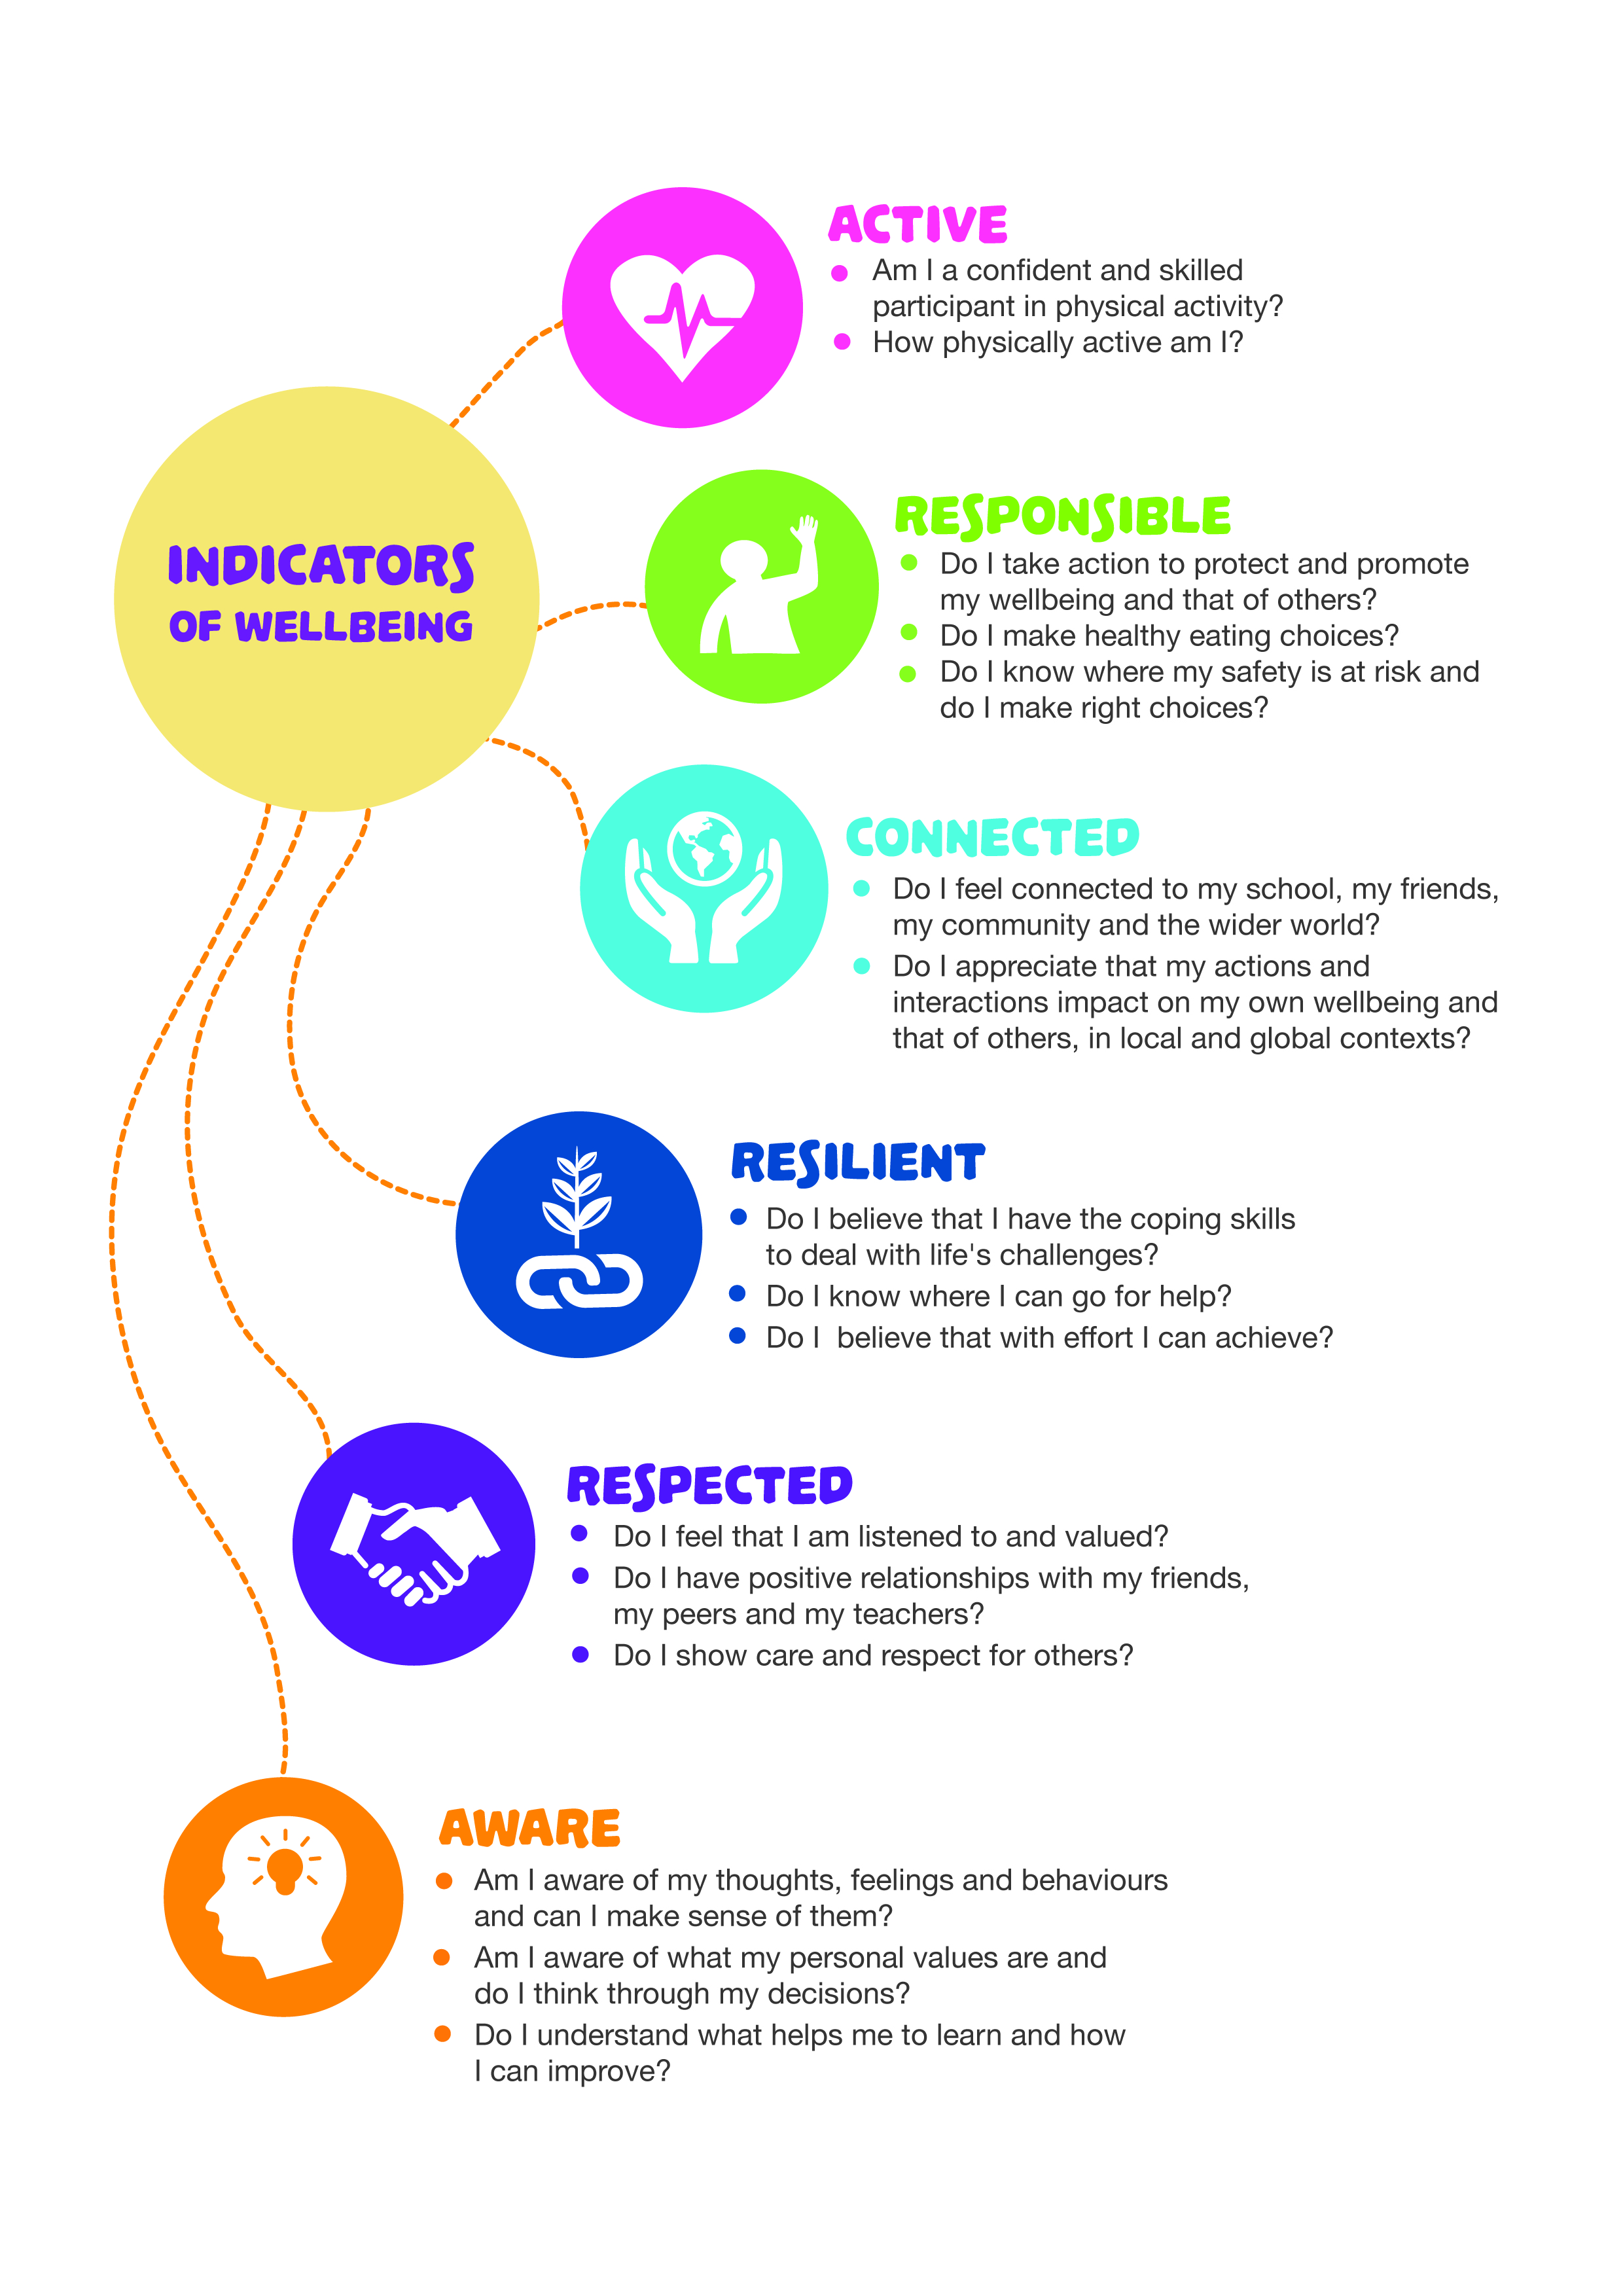 Wellbeing Indicators